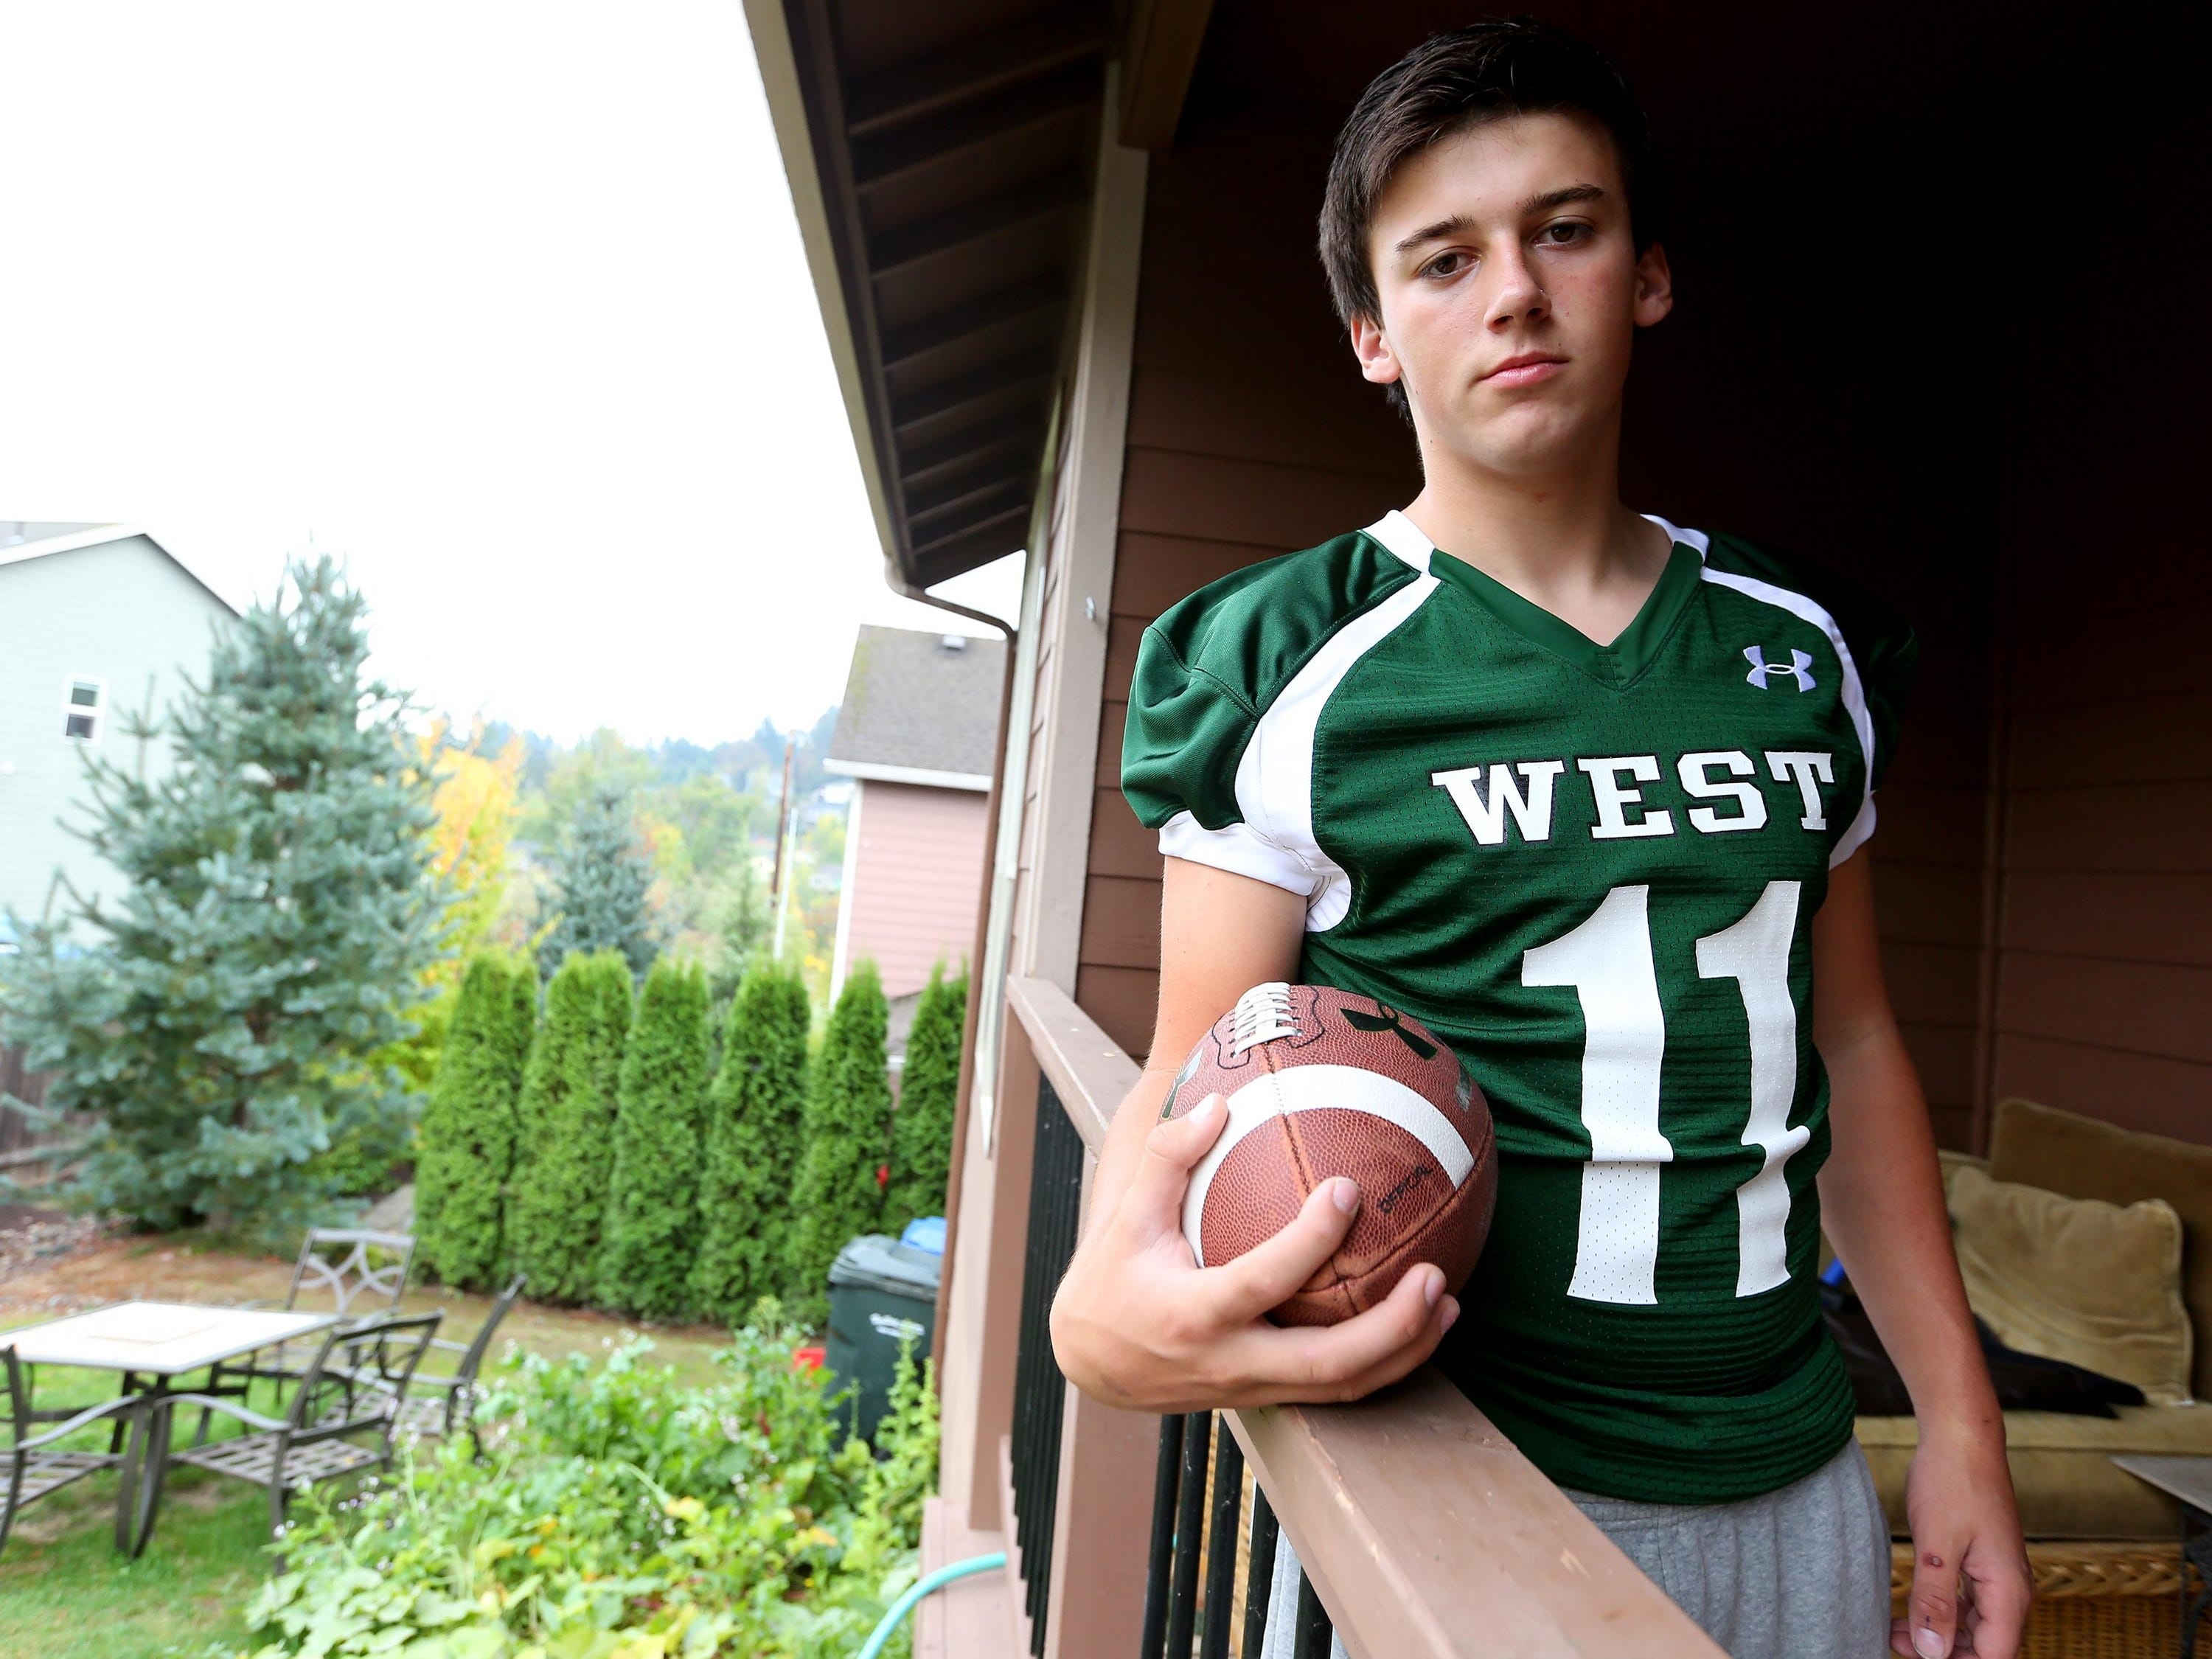 West Salem freshman quarterback Garrett Moore at his home, Thursday, Oct. 7, 2015, in West Salem, Ore. Moore was suspended from school for sexual harassment after taking a snap under center during practice.